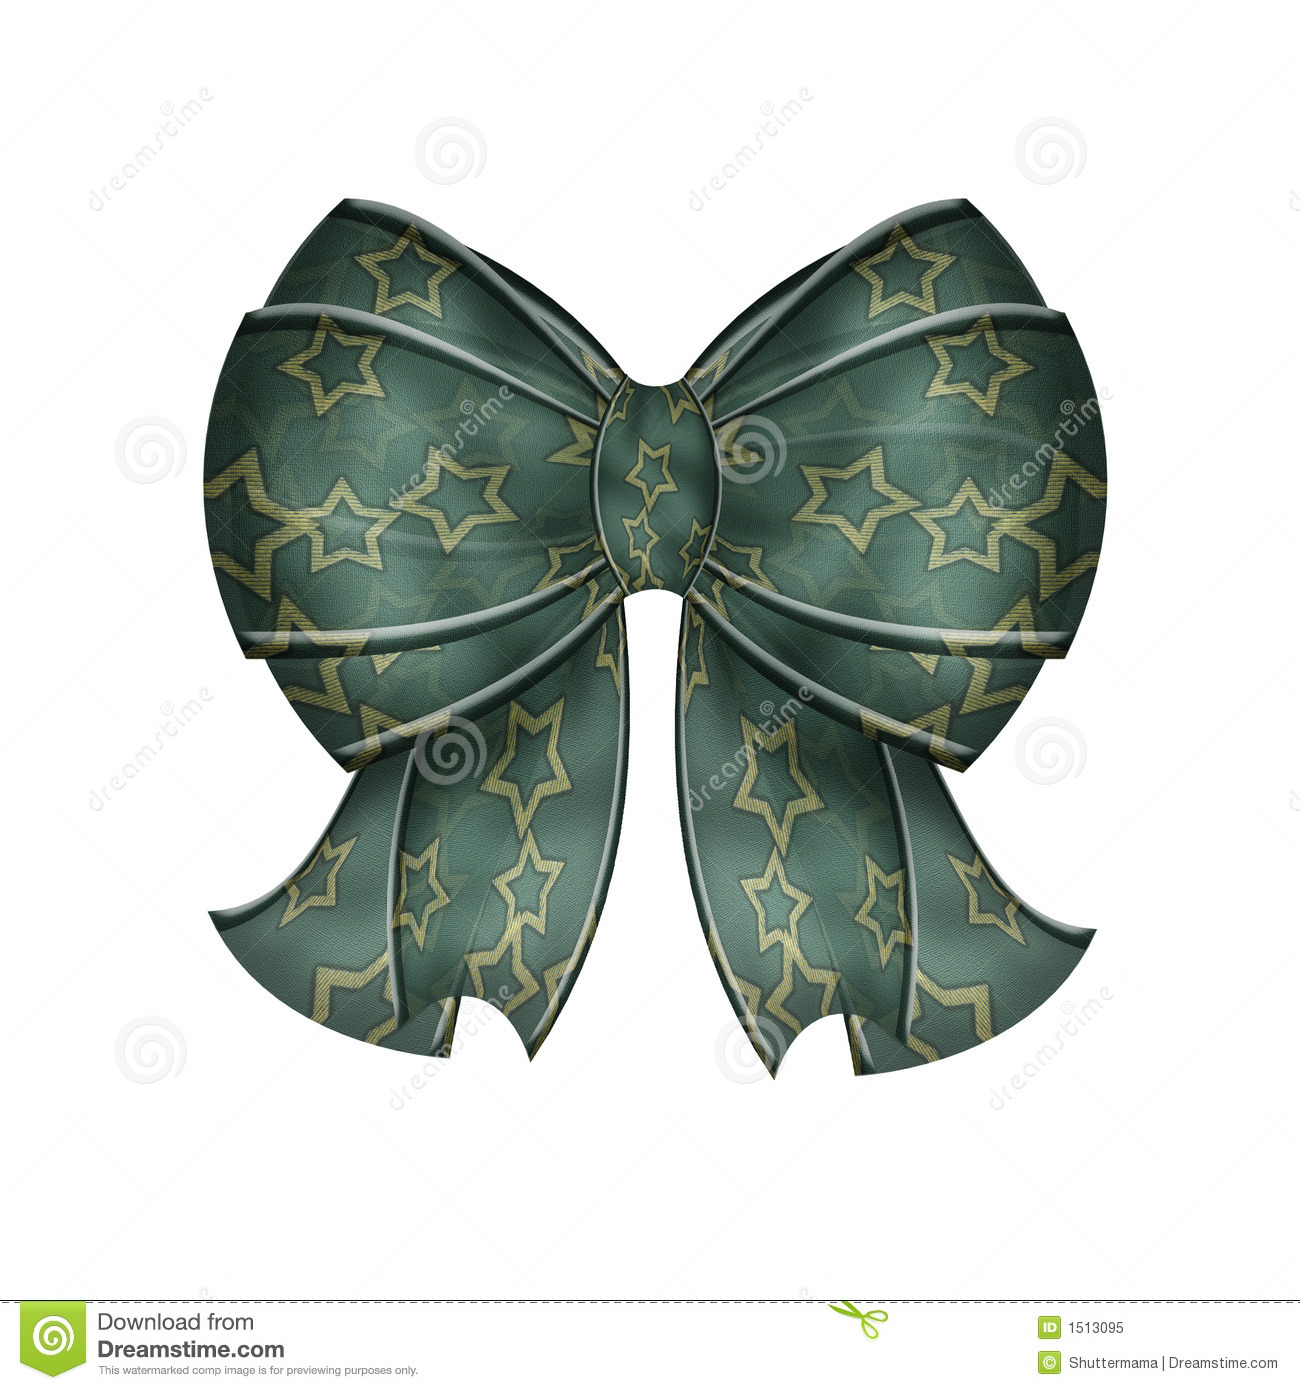 Fancy Blue Green Bow With Stars Royalty Free Stock Photo   Image